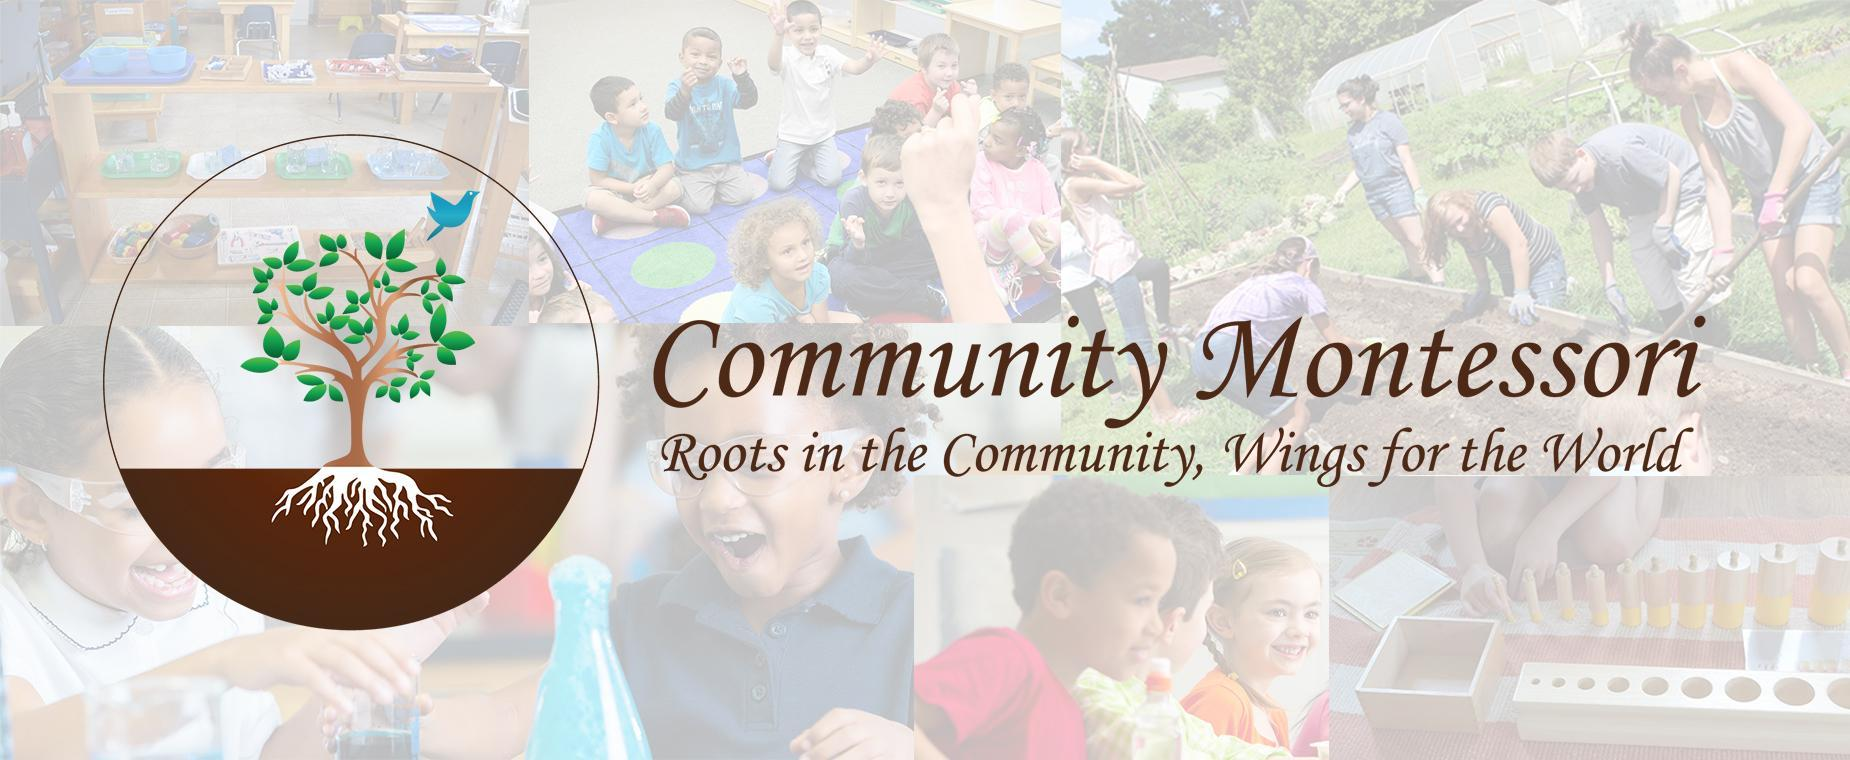 Learn About Community Montessori